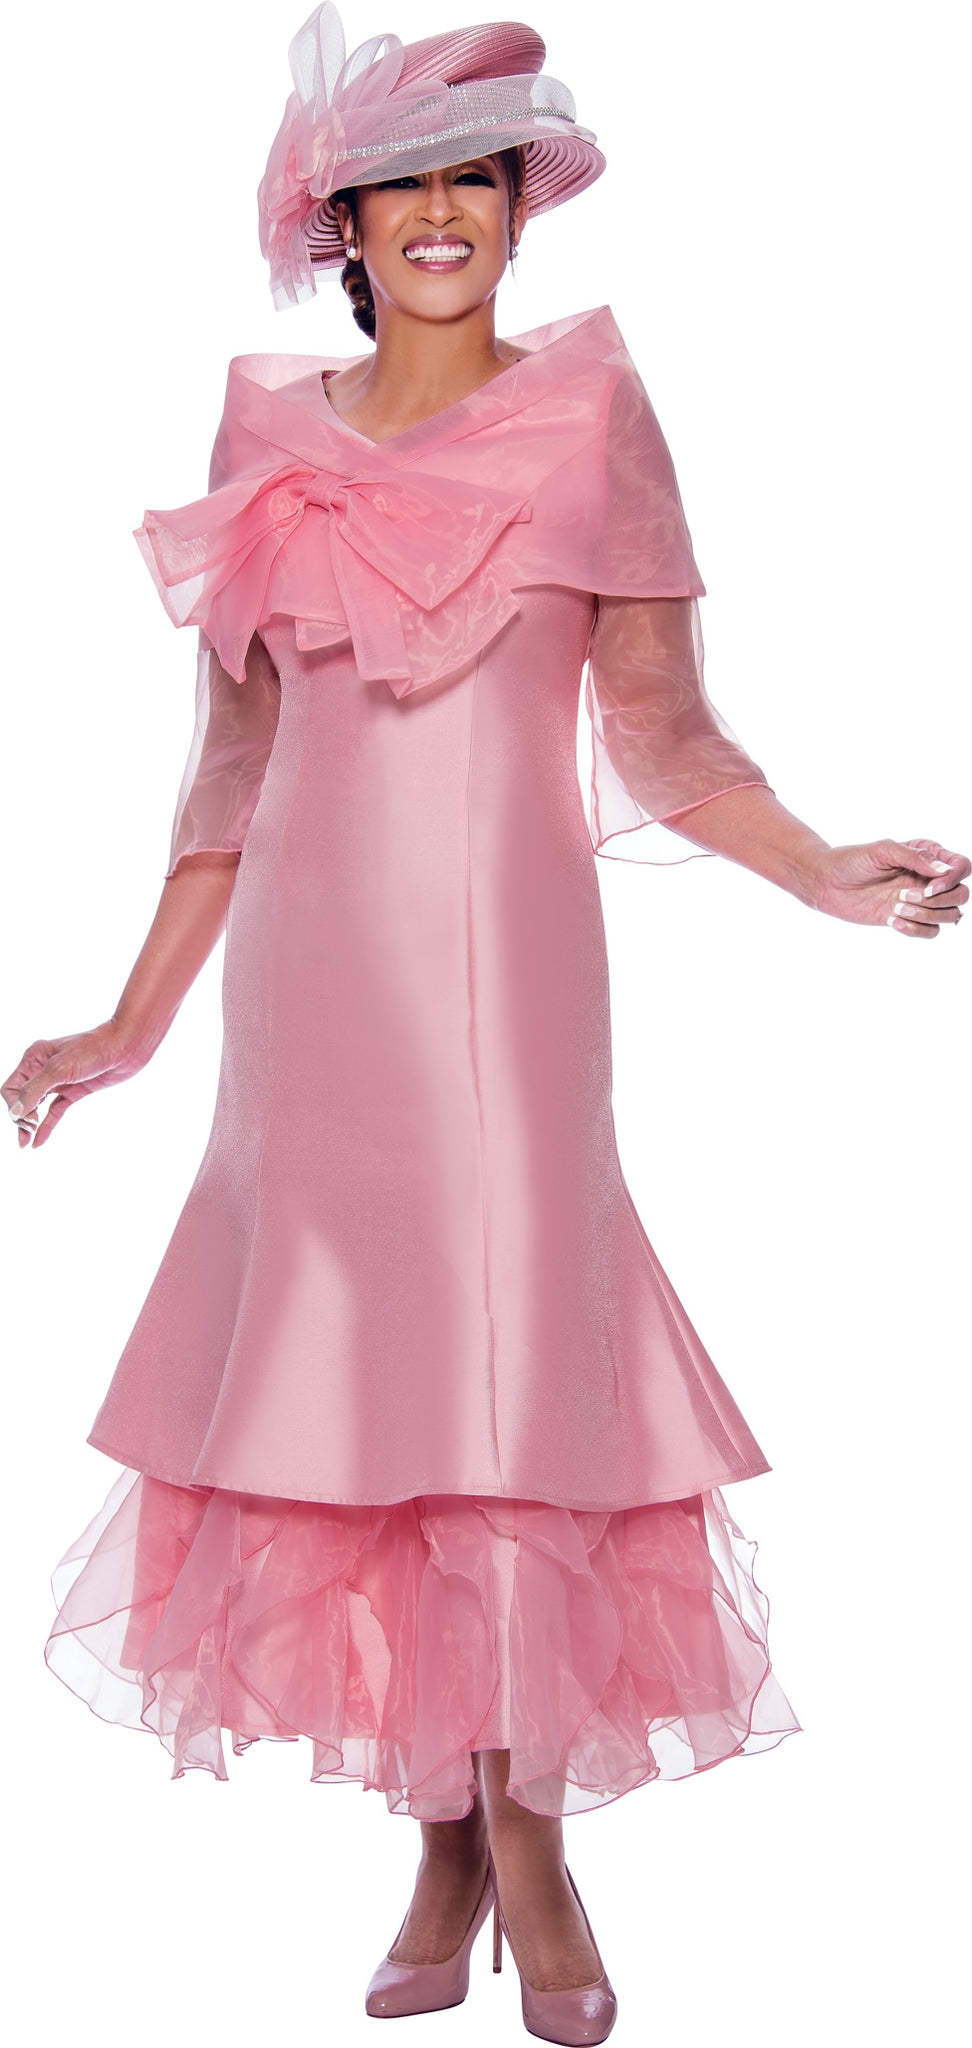 Dorinda Clark Cole 2692C-Pink - Church Suits For Less